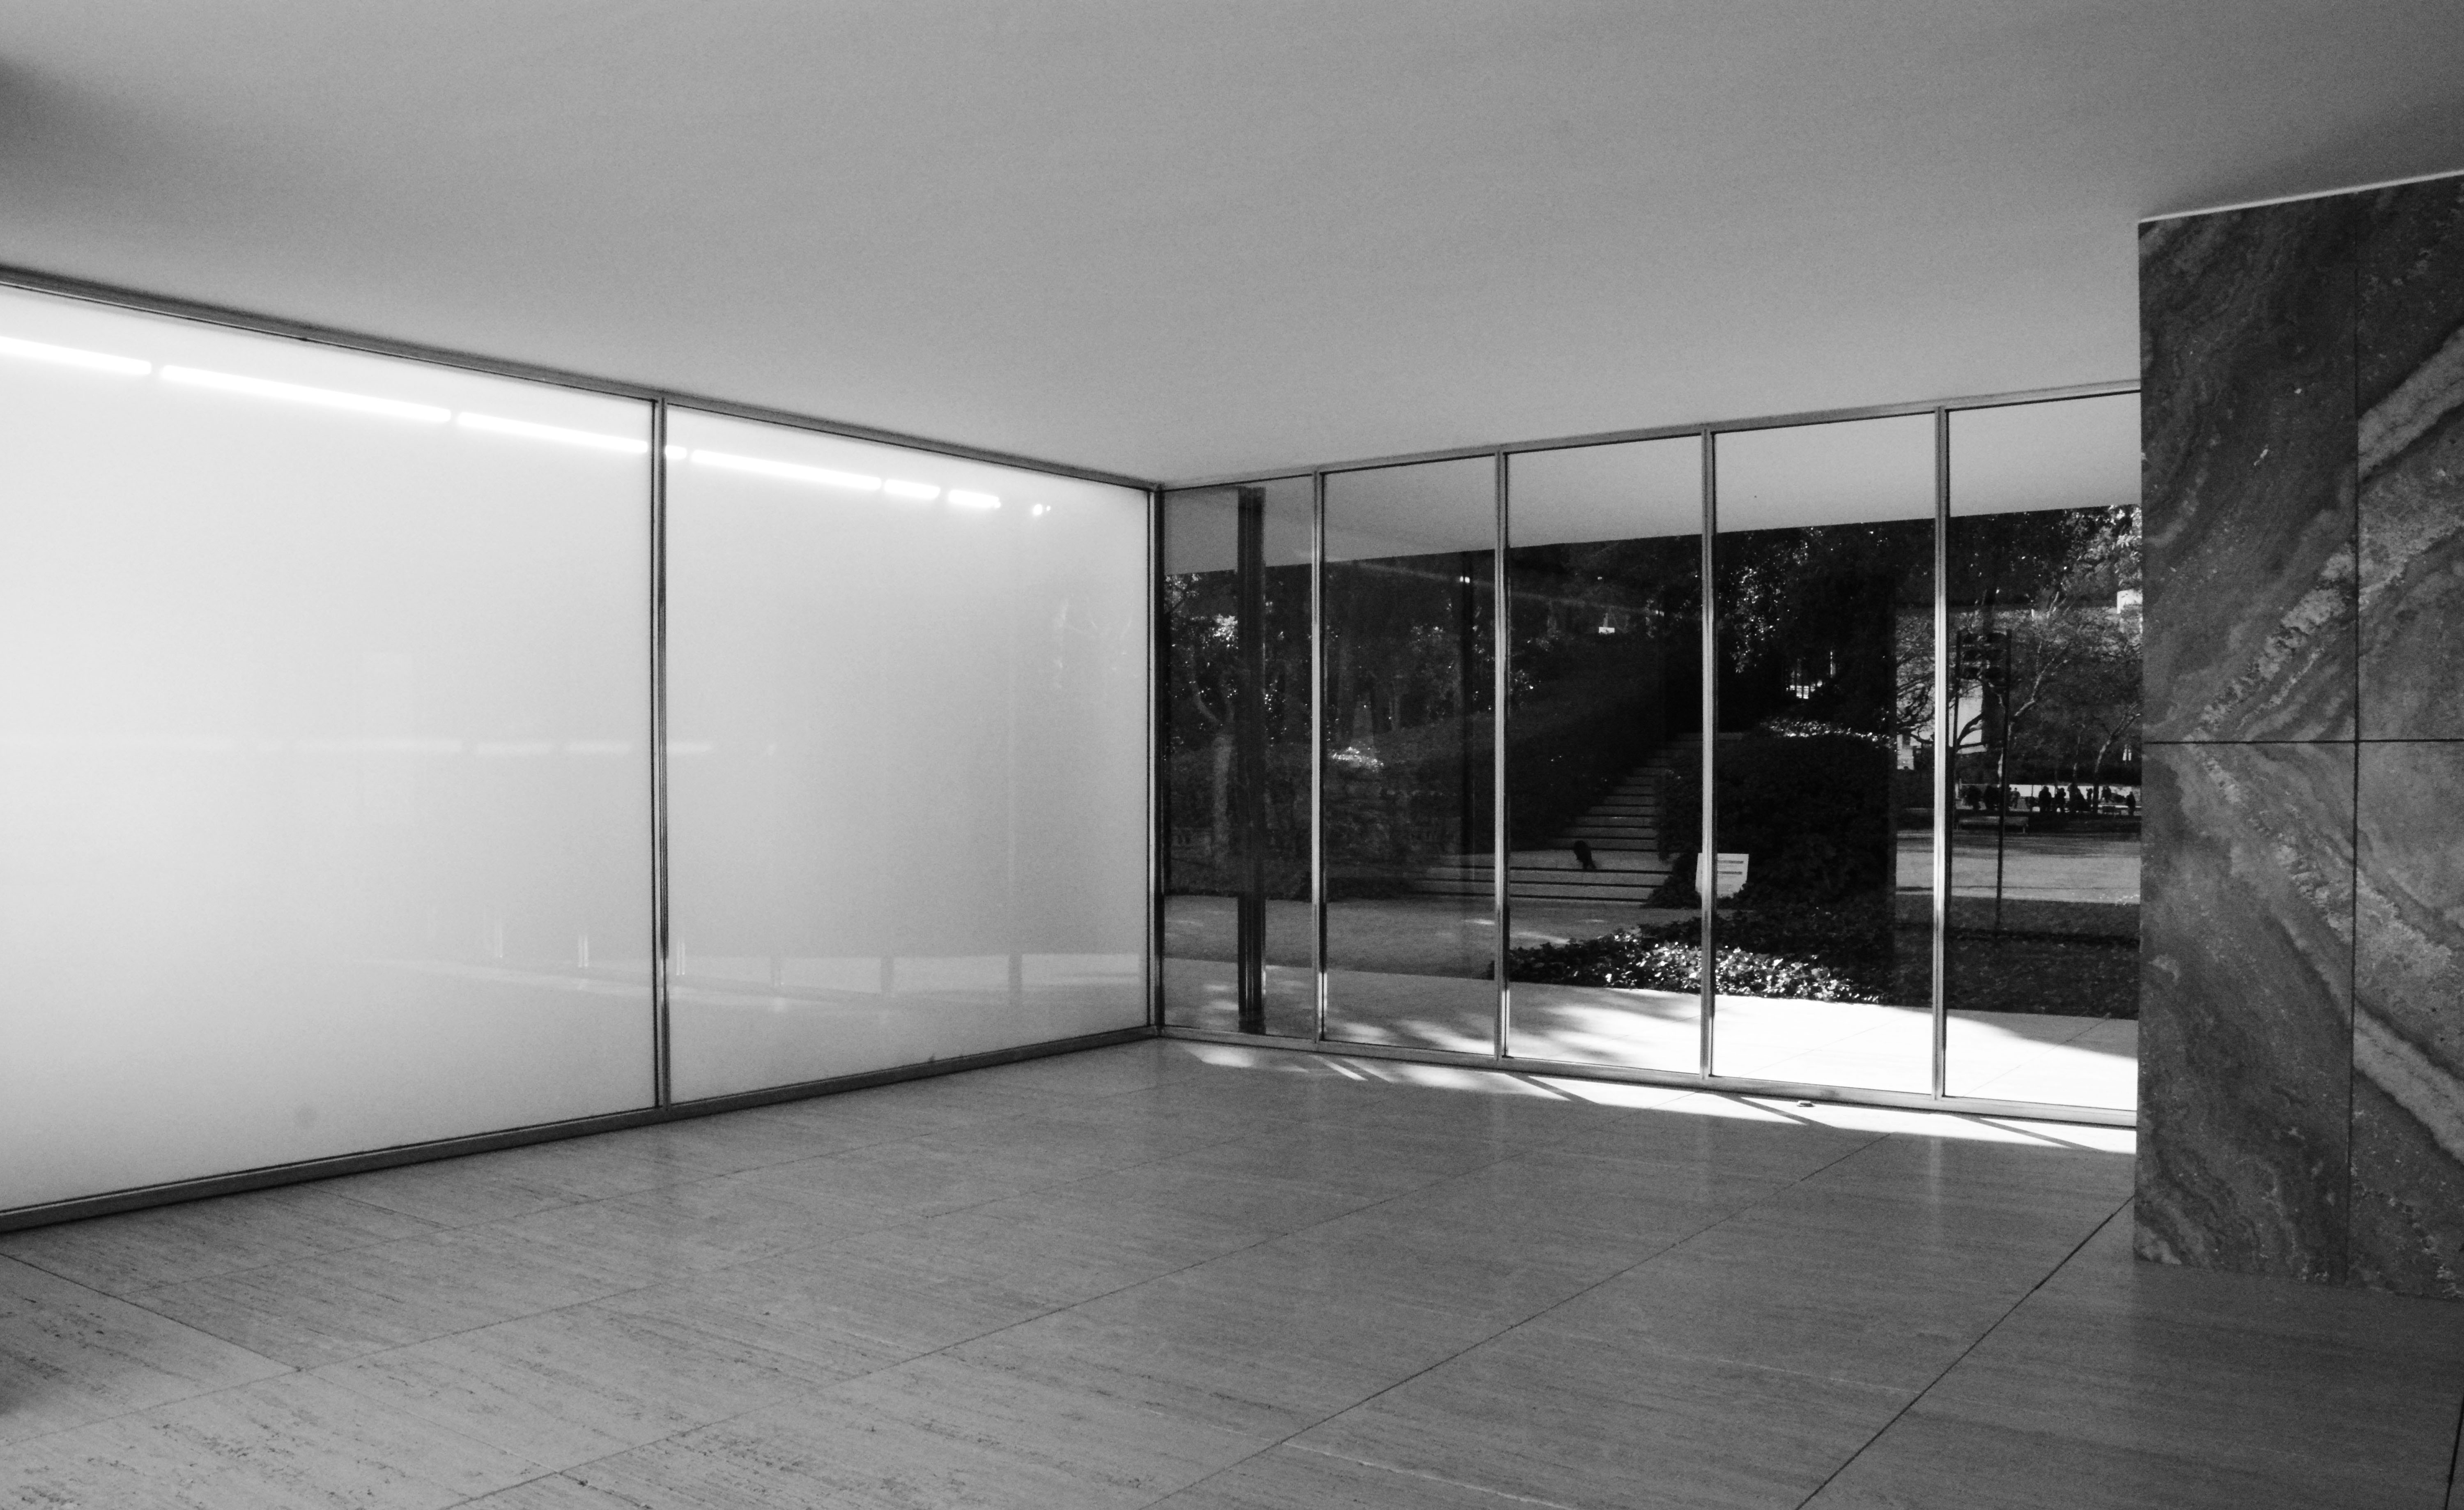 Le pavillon allemand de barcelone ludwig mies van der rohe for Barcelone architecture contemporaine